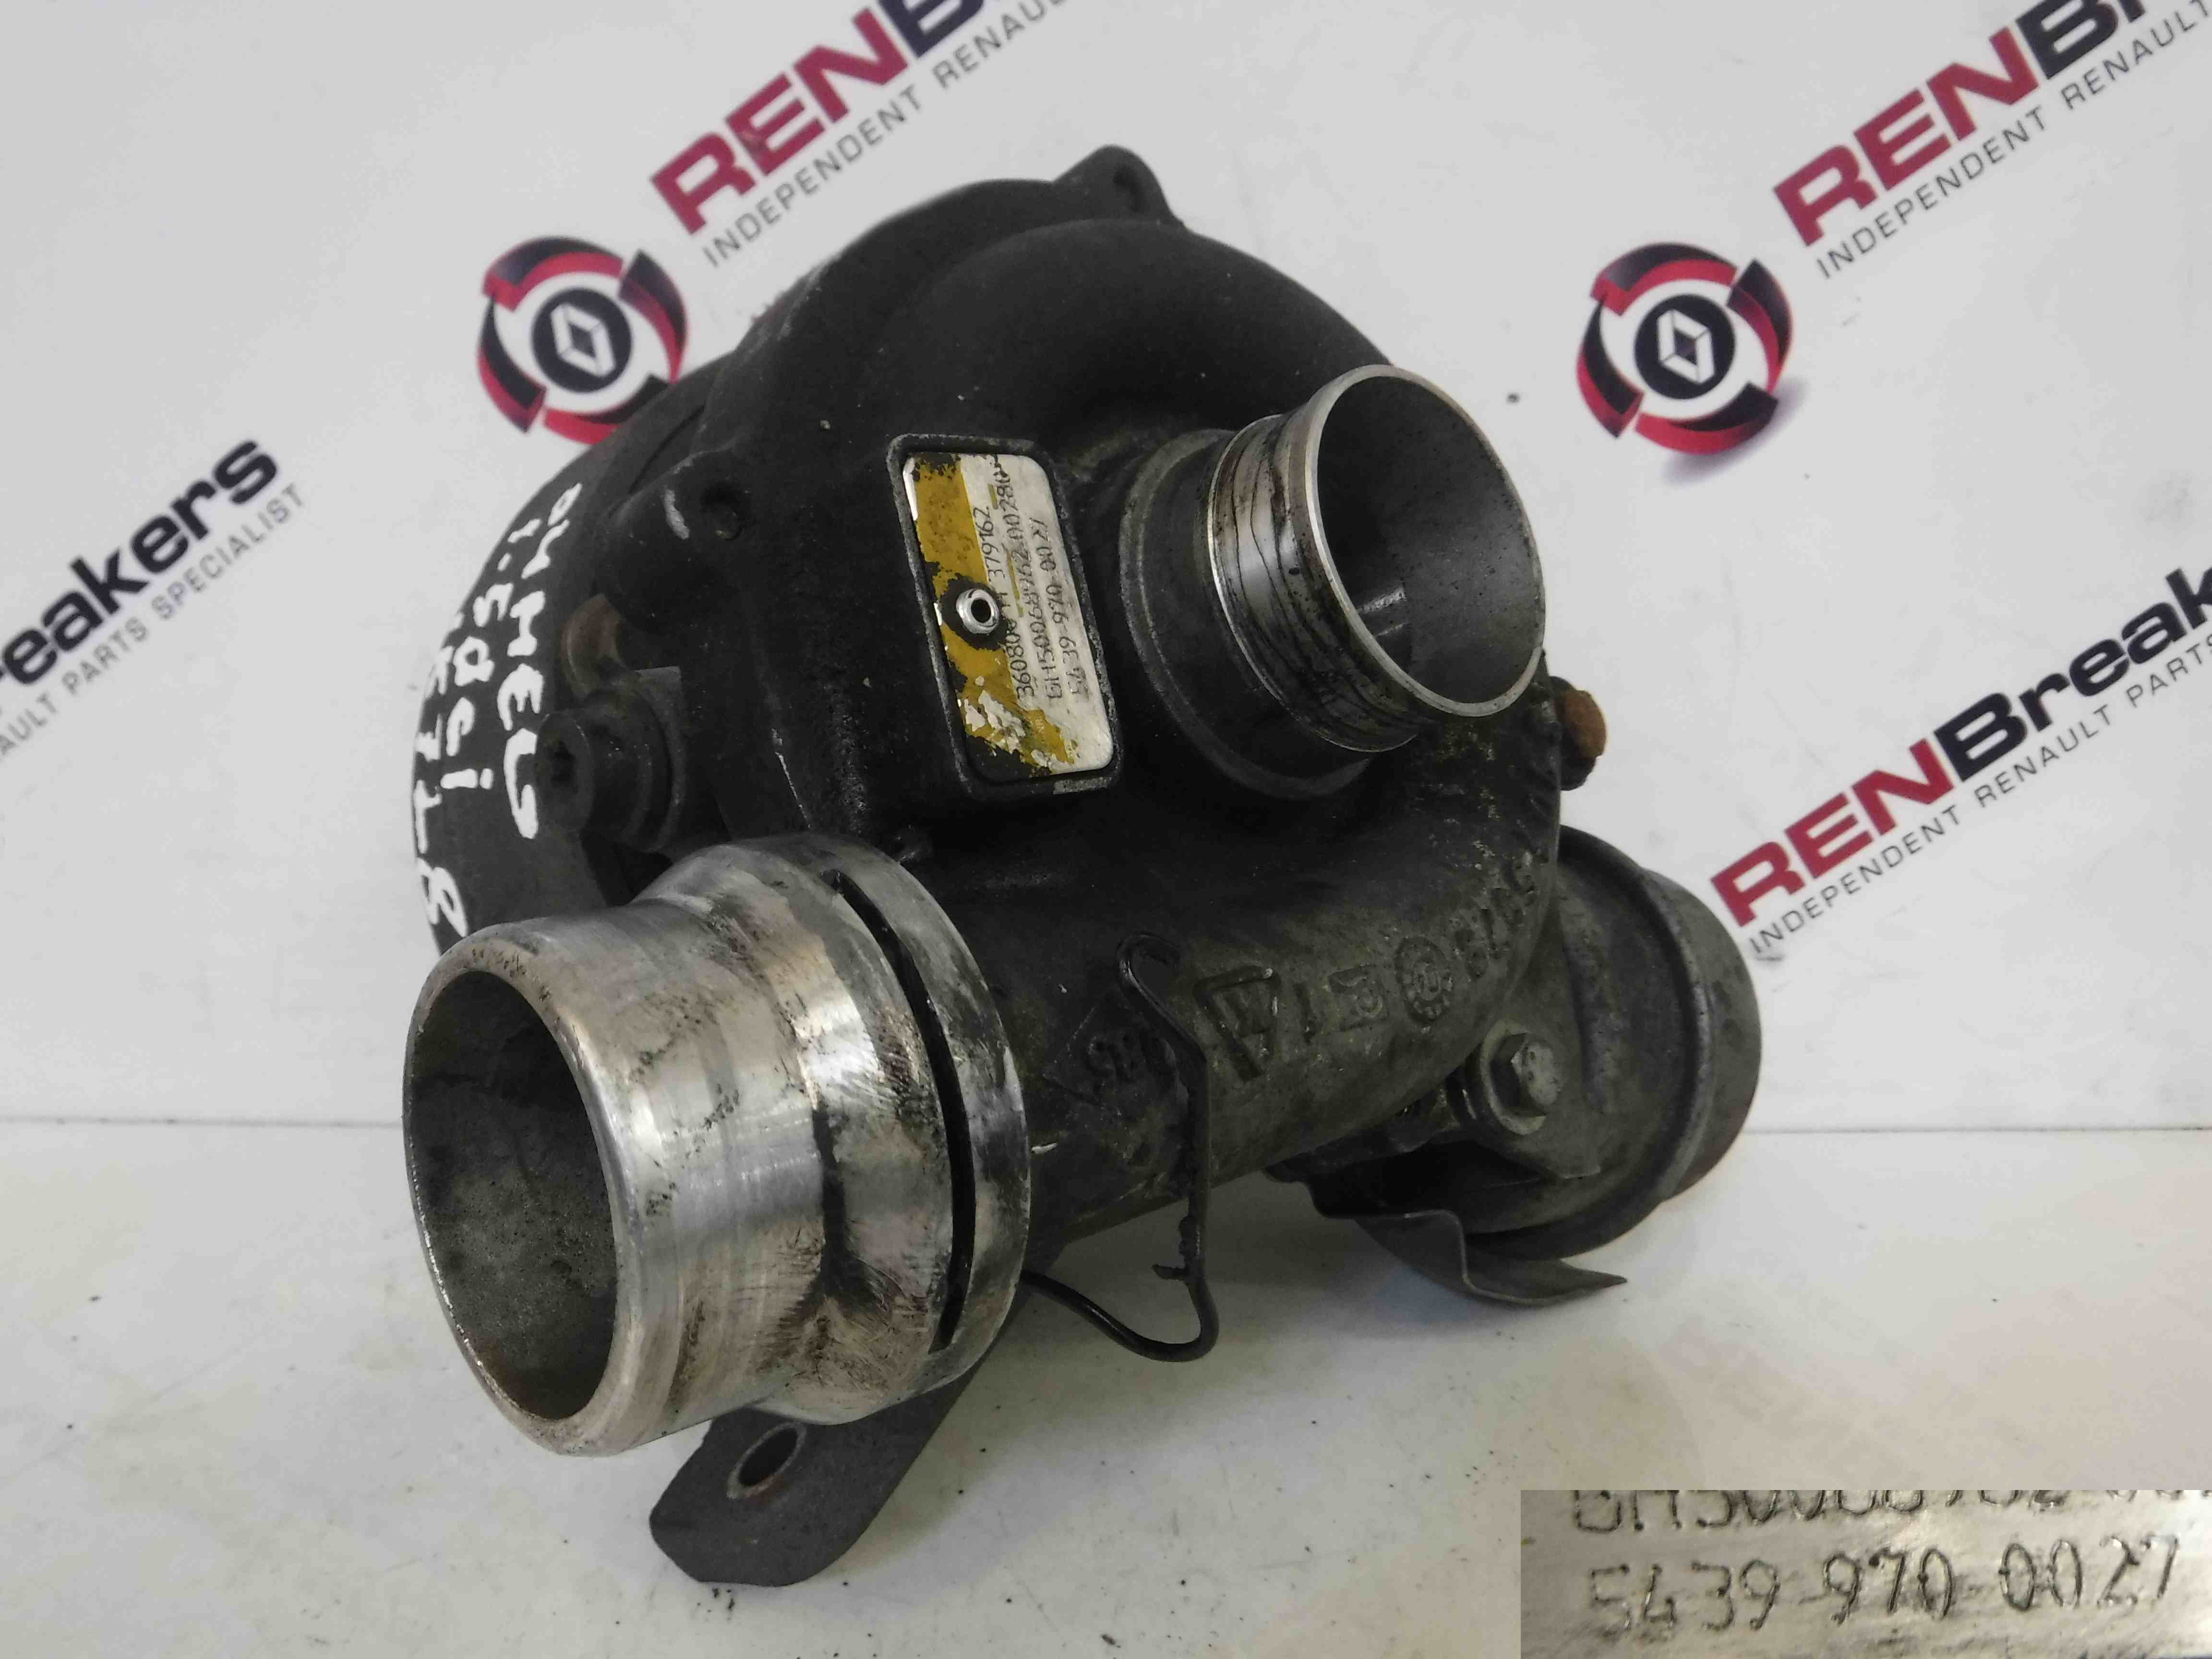 renault clio 2001 2006 1 5 dci turbo charger unit k9k 712 54399700027 store renault breakers. Black Bedroom Furniture Sets. Home Design Ideas